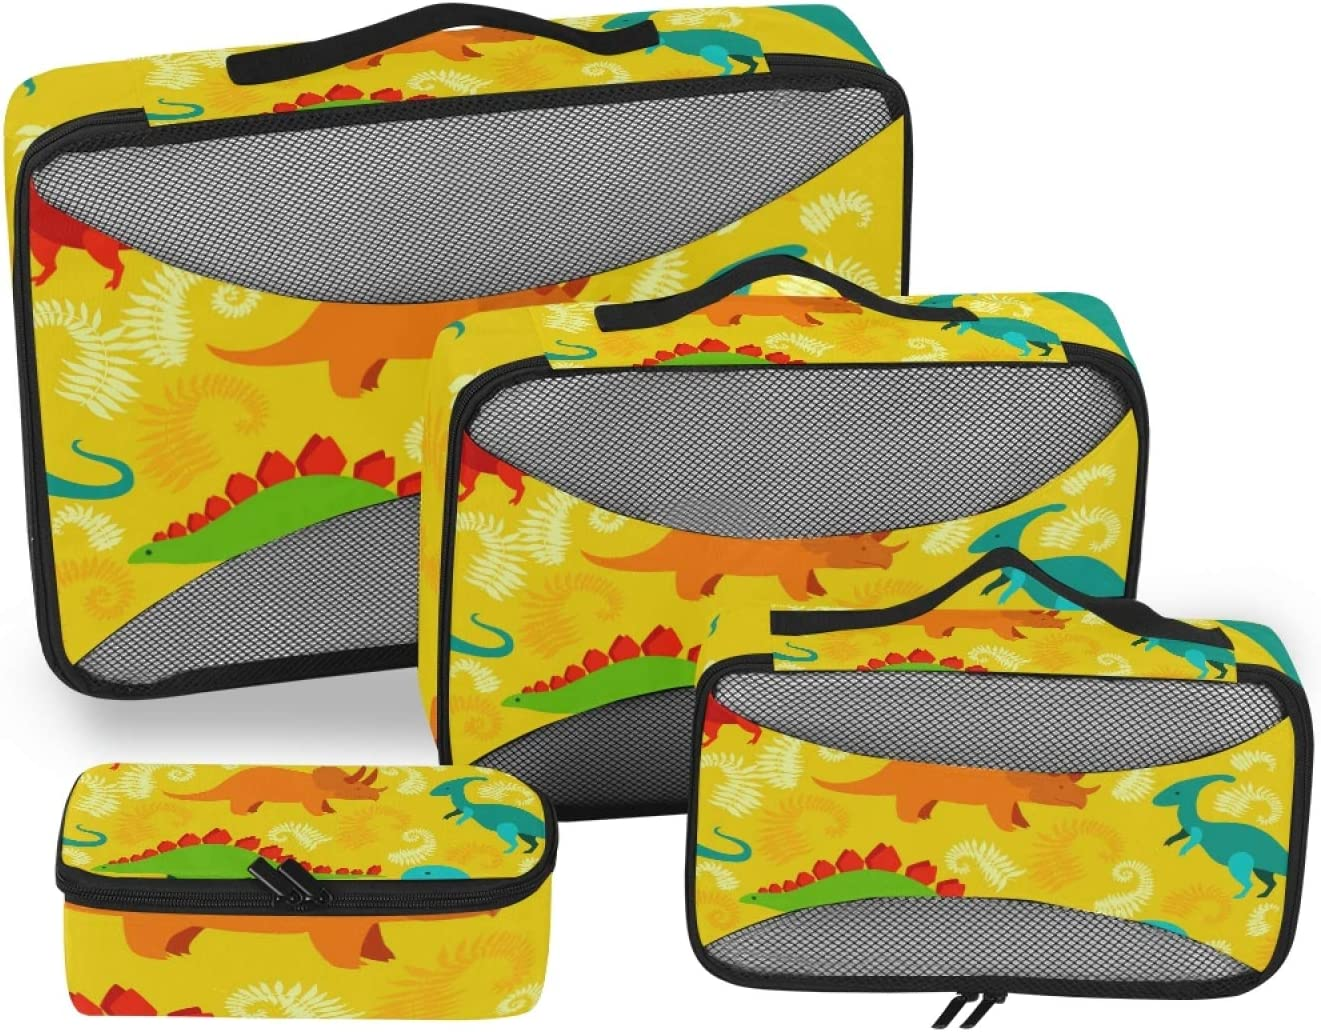 4 Set Packing Cubes with Toiletry Dinosaur Bag Tulsa New Free Shipping Mall - Yellow L Travel